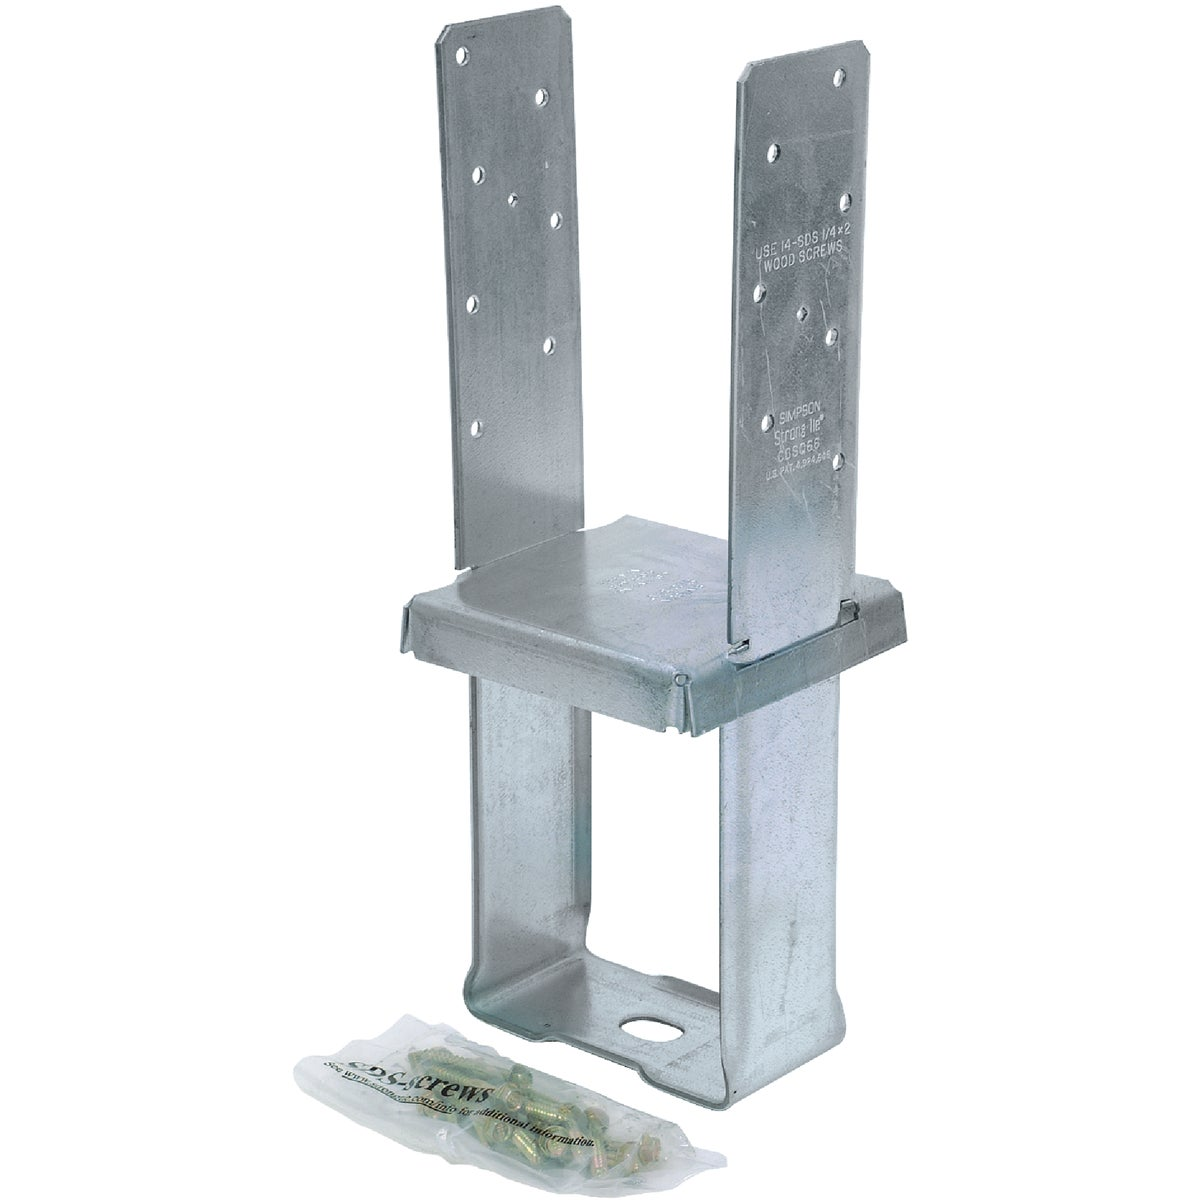 6X6 STANDOFF COLUMN BASE - CBSQ66-SDS2 by Simpson Strong Tie